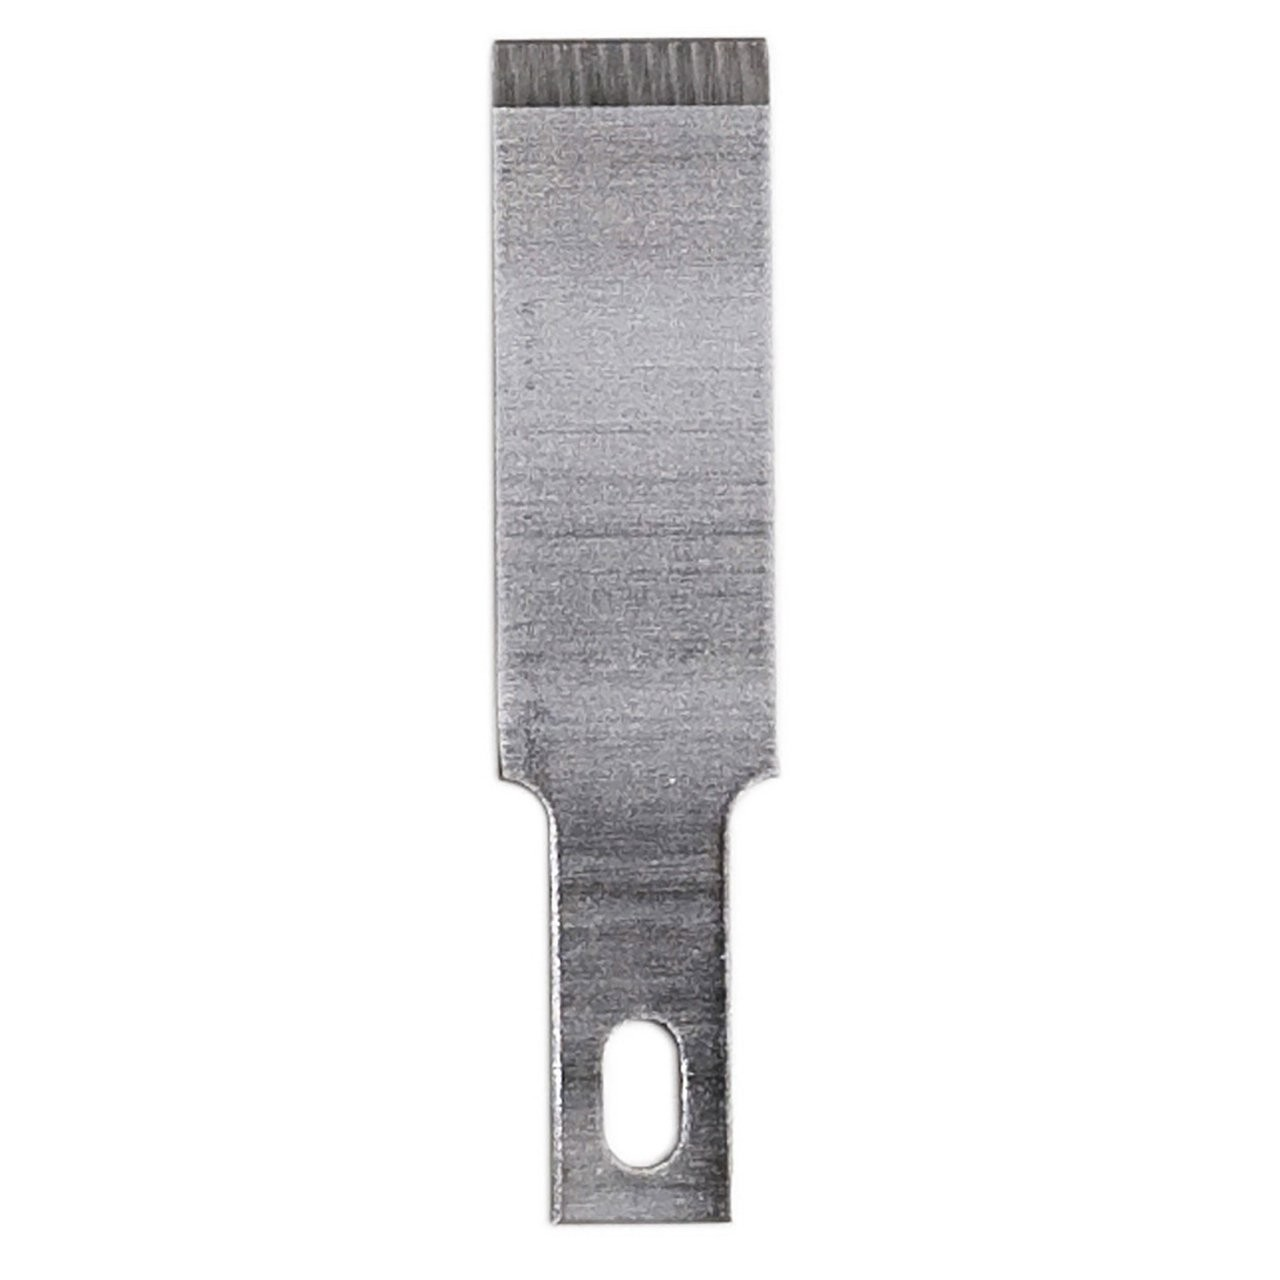 #17 Small Chisel Blades (Excel)